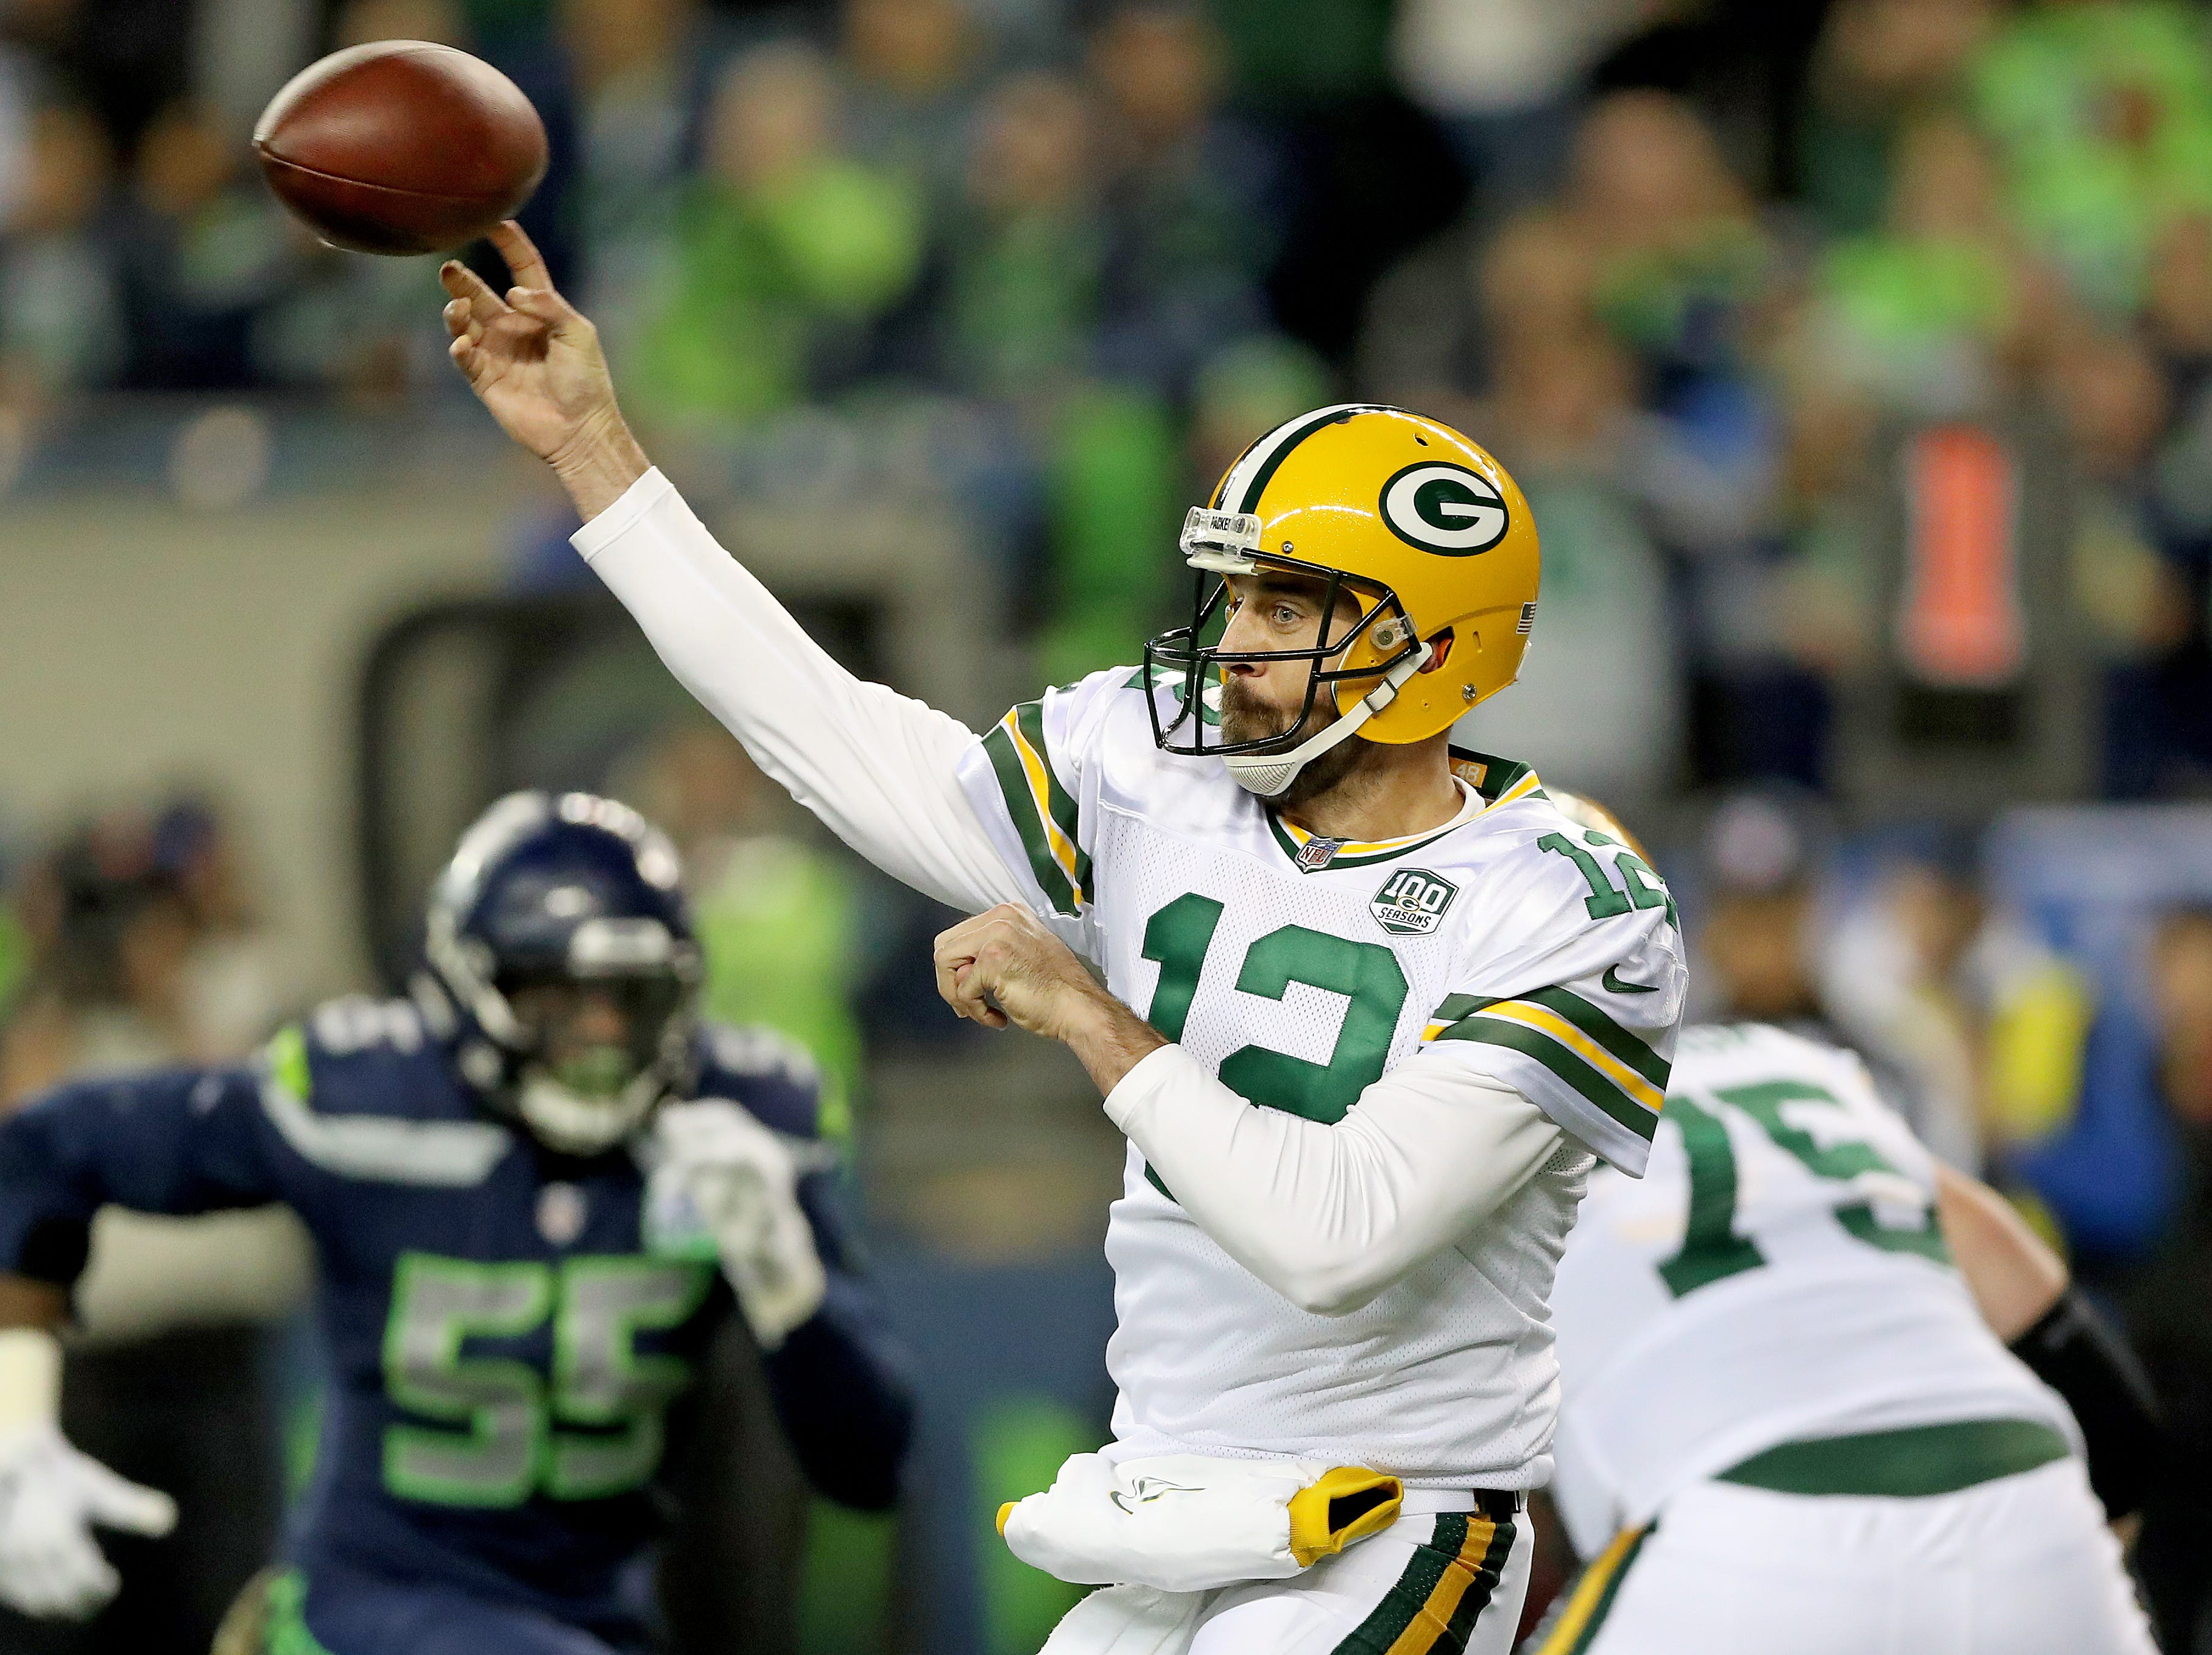 Green Bay Packers quarterback Aaron Rodgers (12) whips a shot pass against the Seattle Seahawks at CenturyLink Field Thursday, November 15, 2018 in Seattle, WA. Jim Matthews/USA TODAY NETWORK-Wis